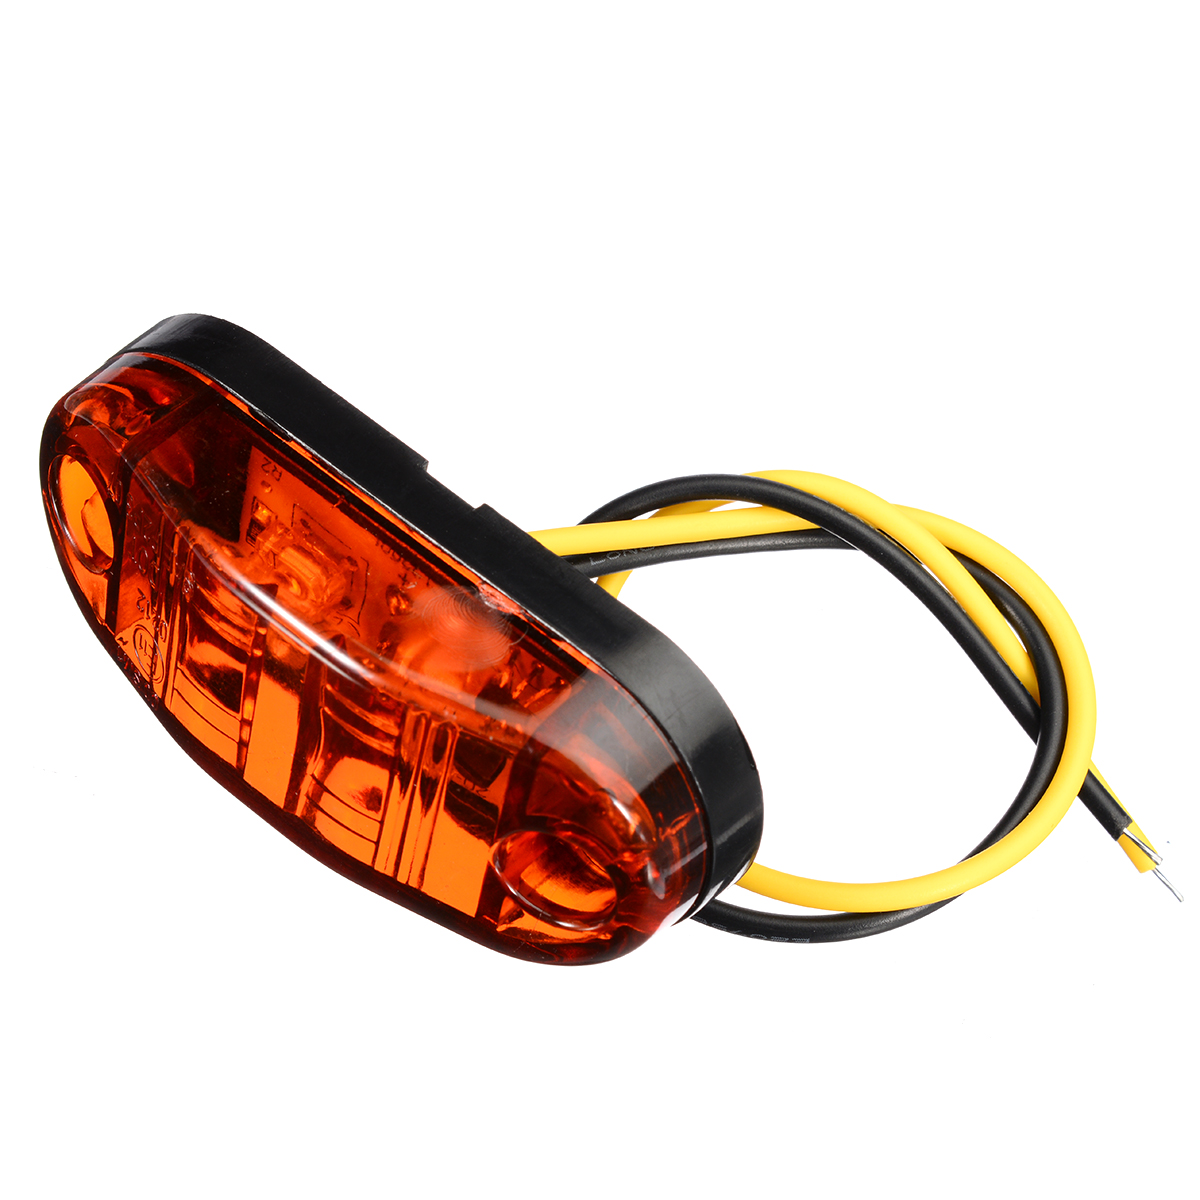 4pcs/set Amber 2LED Light 12V 24V Oval Clearance Car Trailer Truck LED Side Marker Light Lamp Bulbs Waterproof